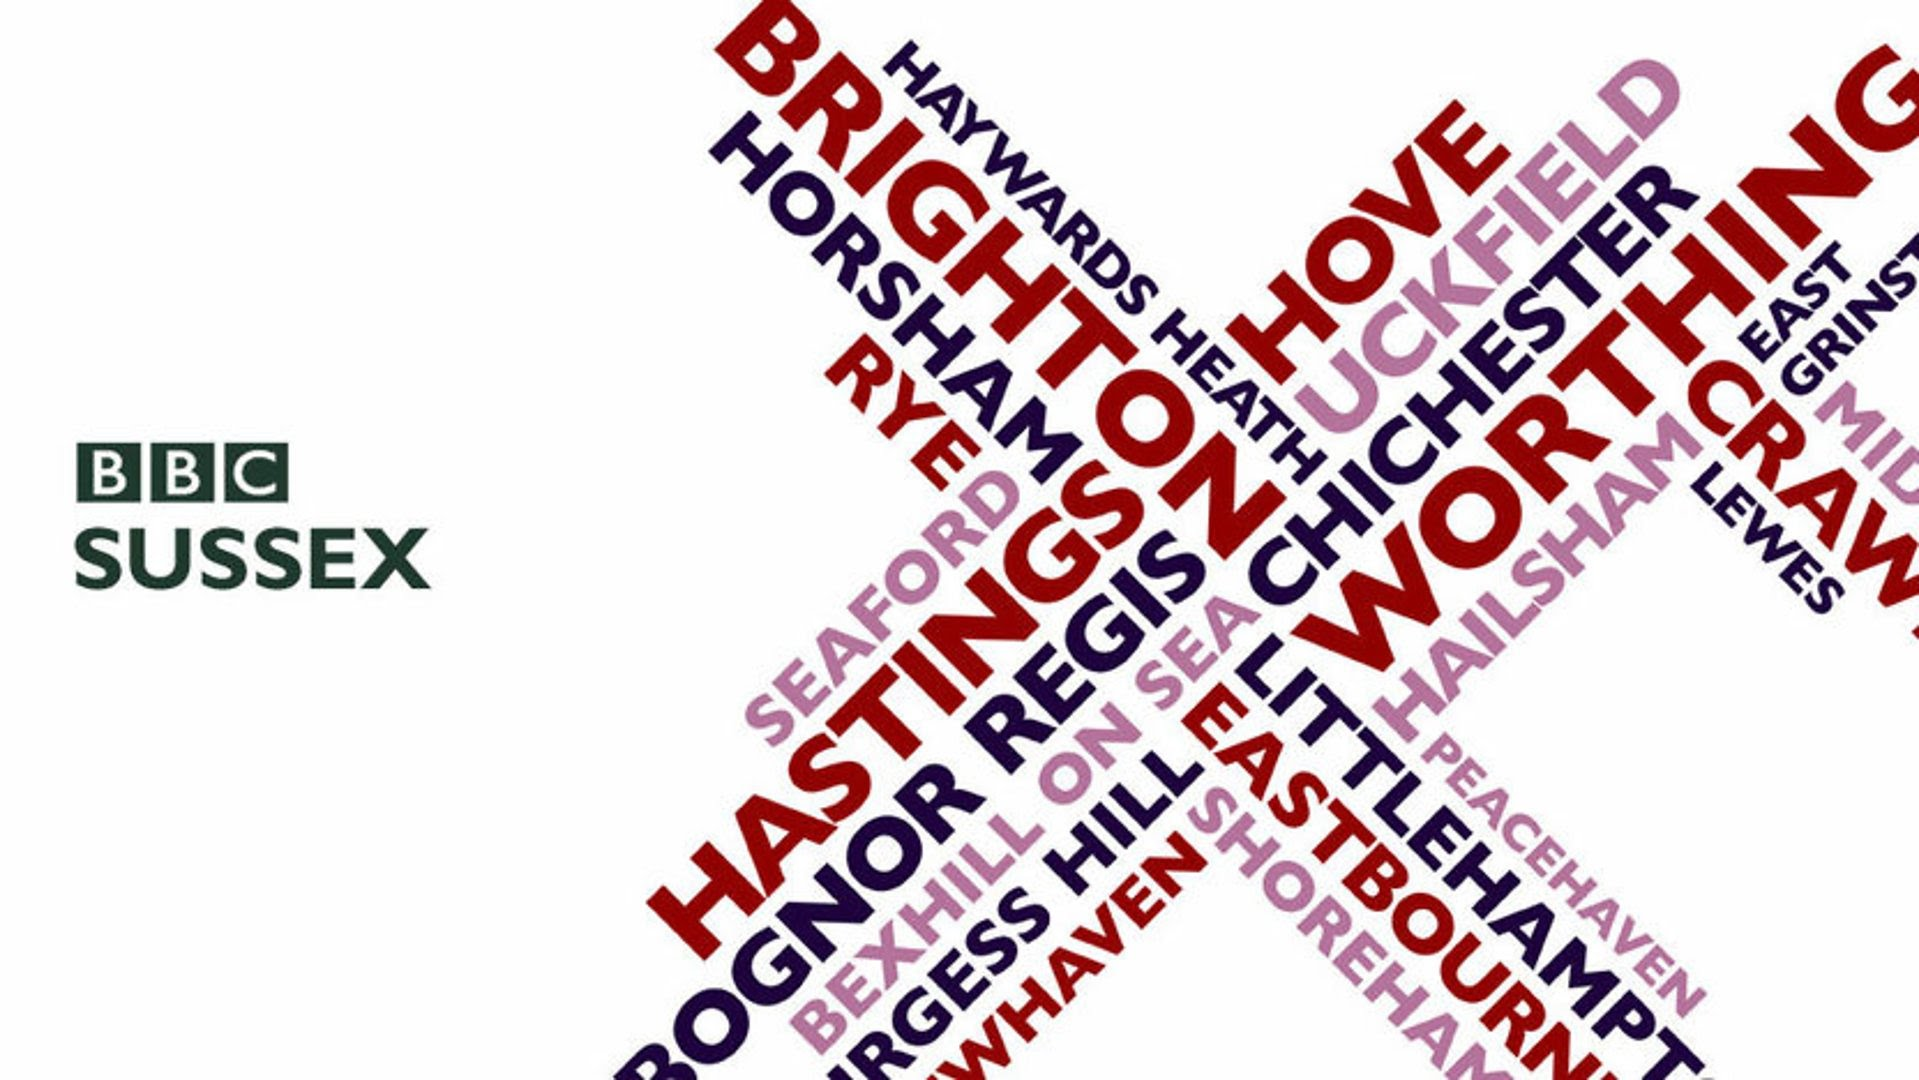 We've Been Interviewed on BBC Sussex Radio